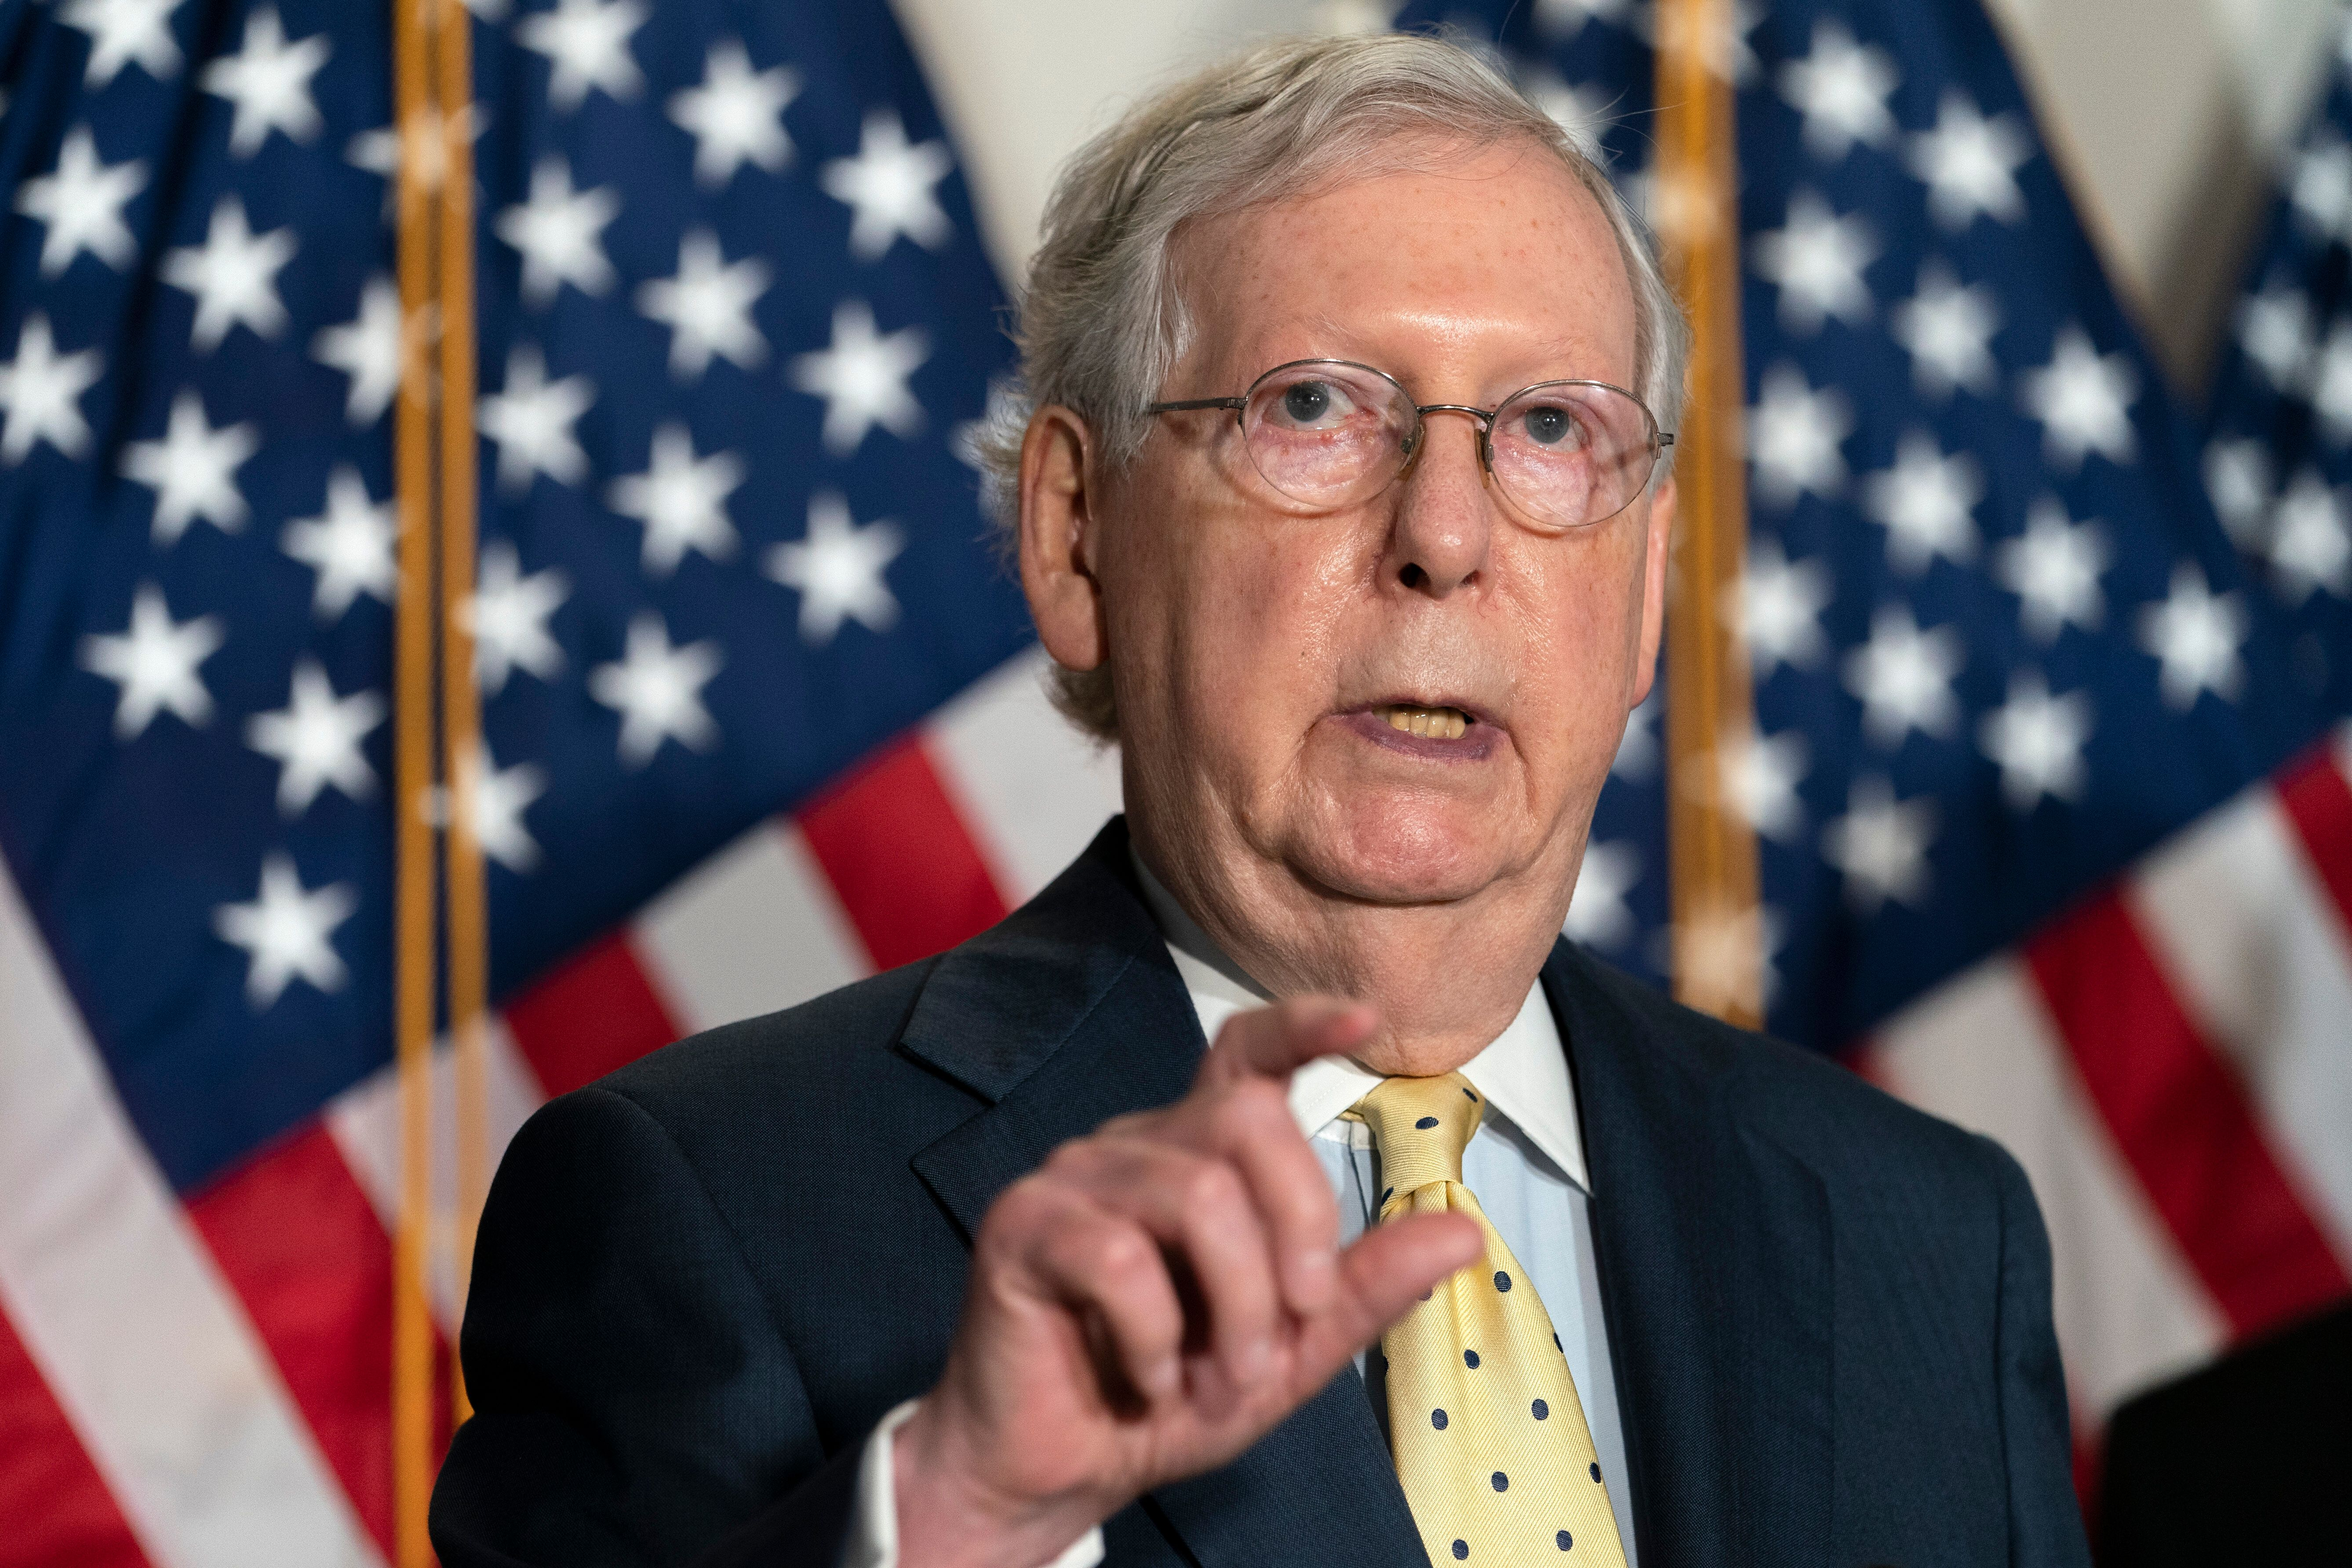 Senate Majority Leader Mitch McConnell (R-Ky.) vowed to give President Donald Trump's Supreme Court nominee a vote, even thou